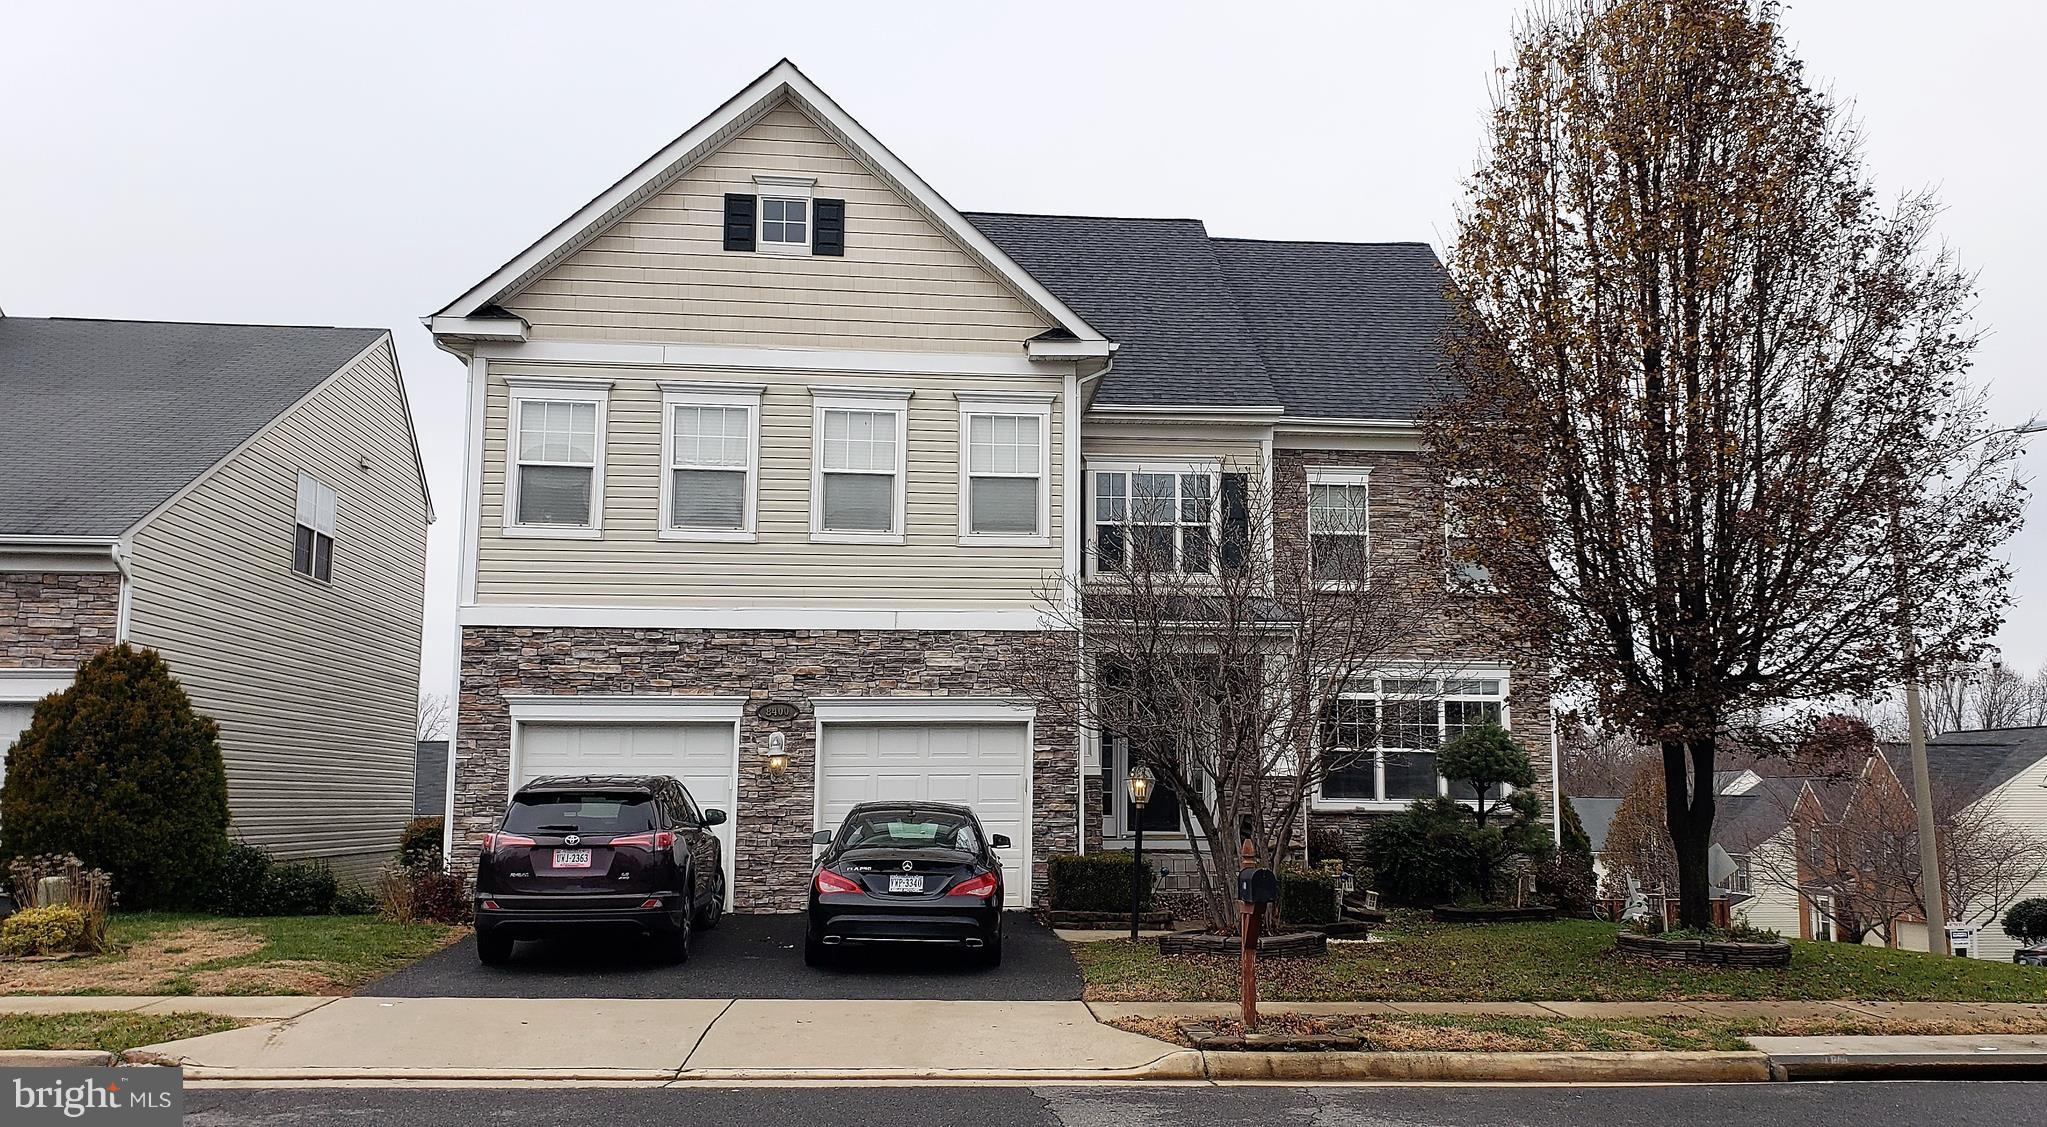 8400 GRANITE LANE, MANASSAS, VA 20111